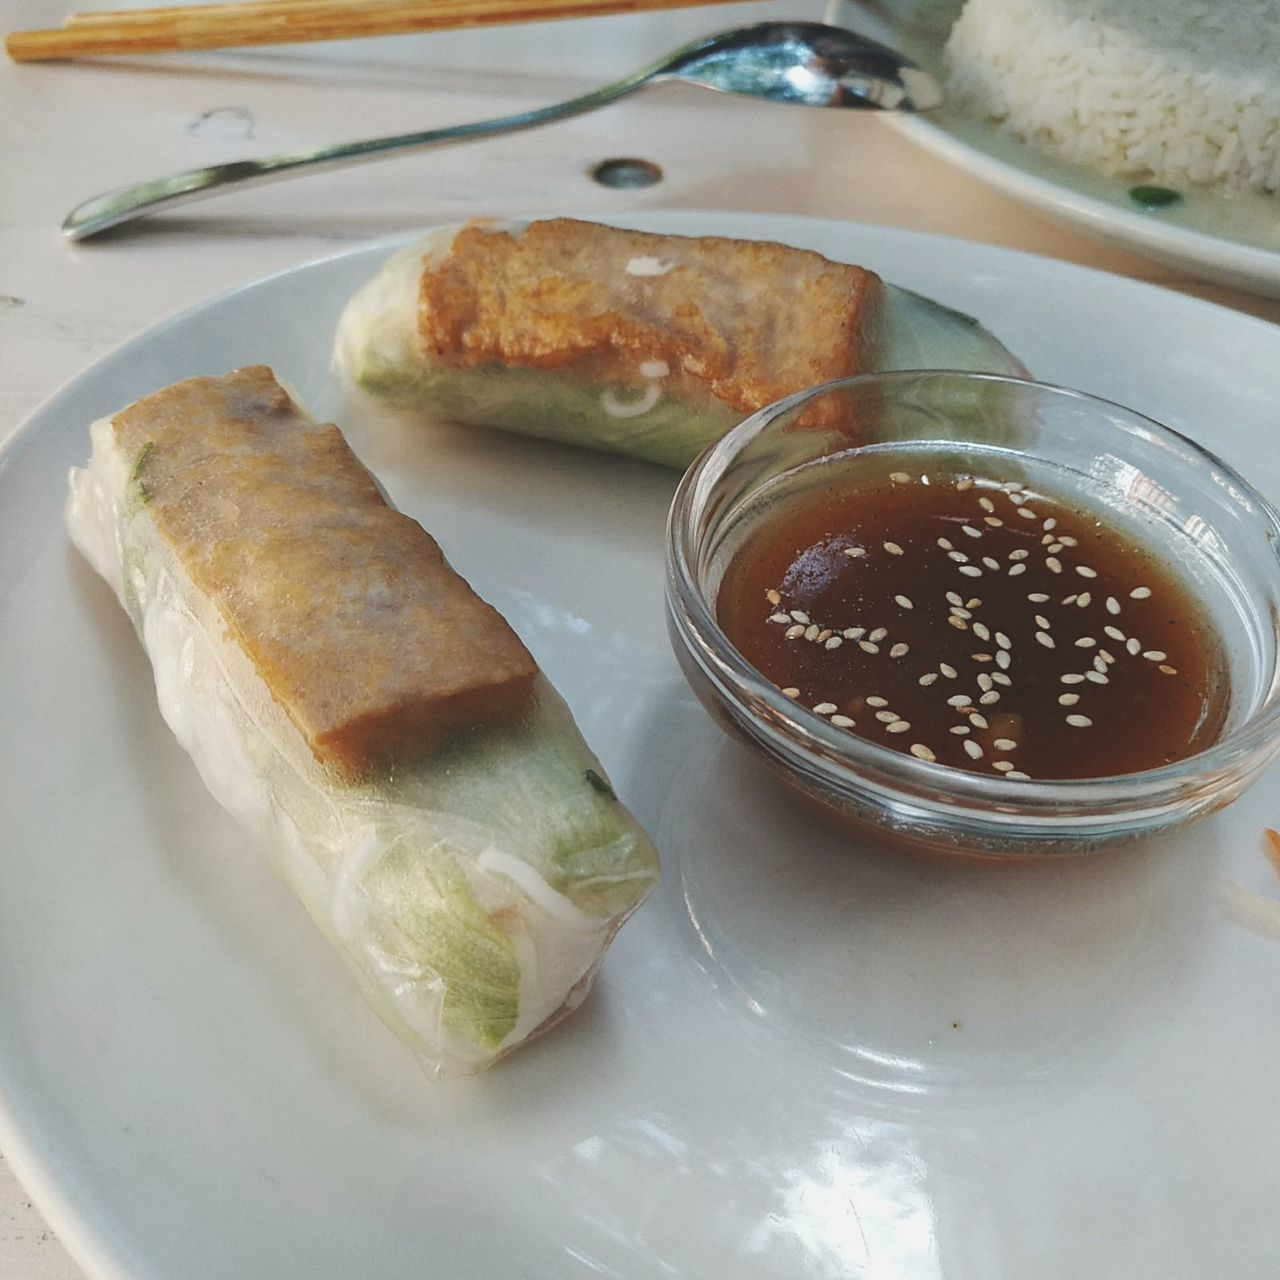 Food And Drink Healthy Eating Sesame Seed Soja Sauce Raw Food Summer Rolls Springrolls Summer Roll Fish Sauce Chinese Food Vietnam Food Vietnamese Food Streetfood Asianfood Summerrolls Springroll Spring Roll Summerroll Tofu Soja Soya Soya Sauce Bowl Nom Nom Nom Yummy